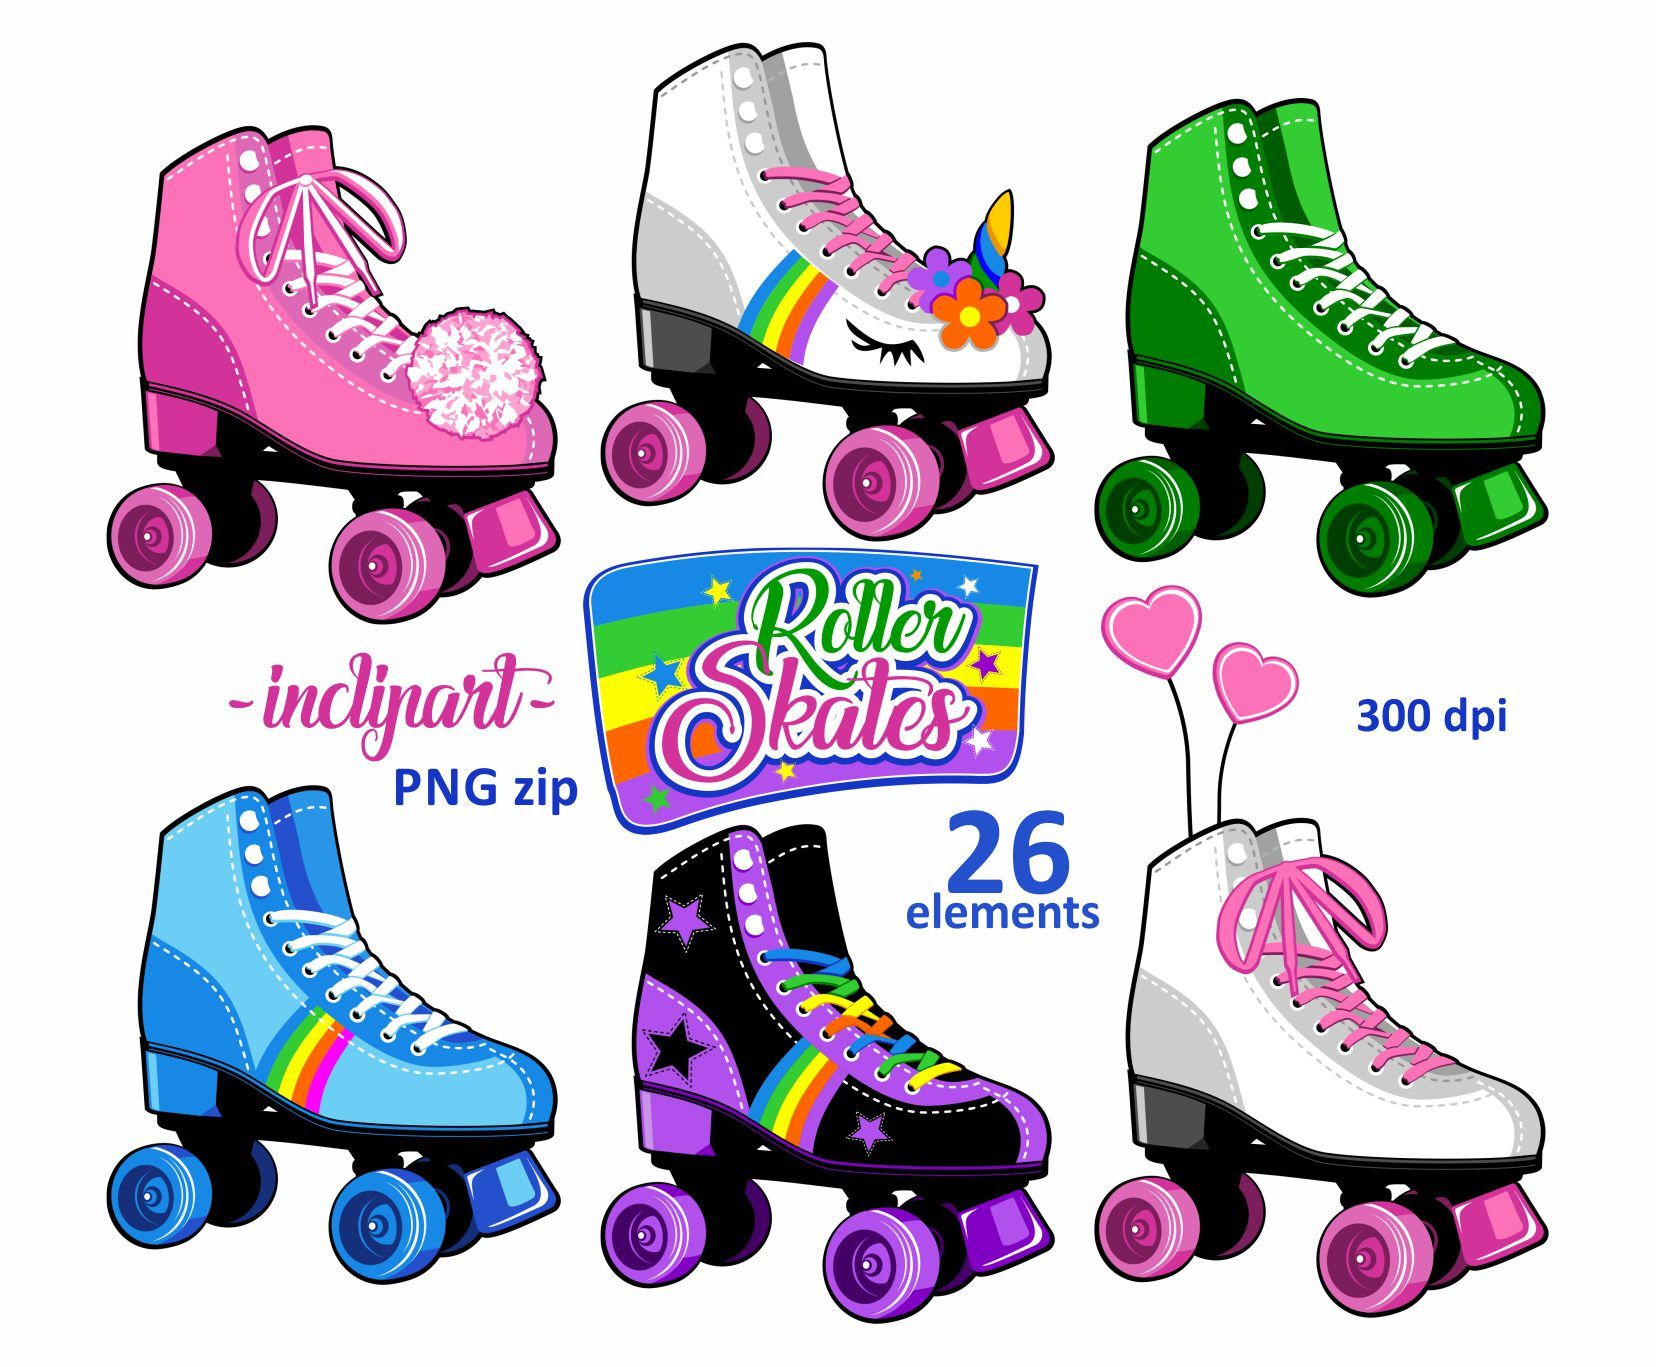 Skate night clipart graphic stock Roller skates clipart. Party clipart. Colorful Roller skate ... graphic stock